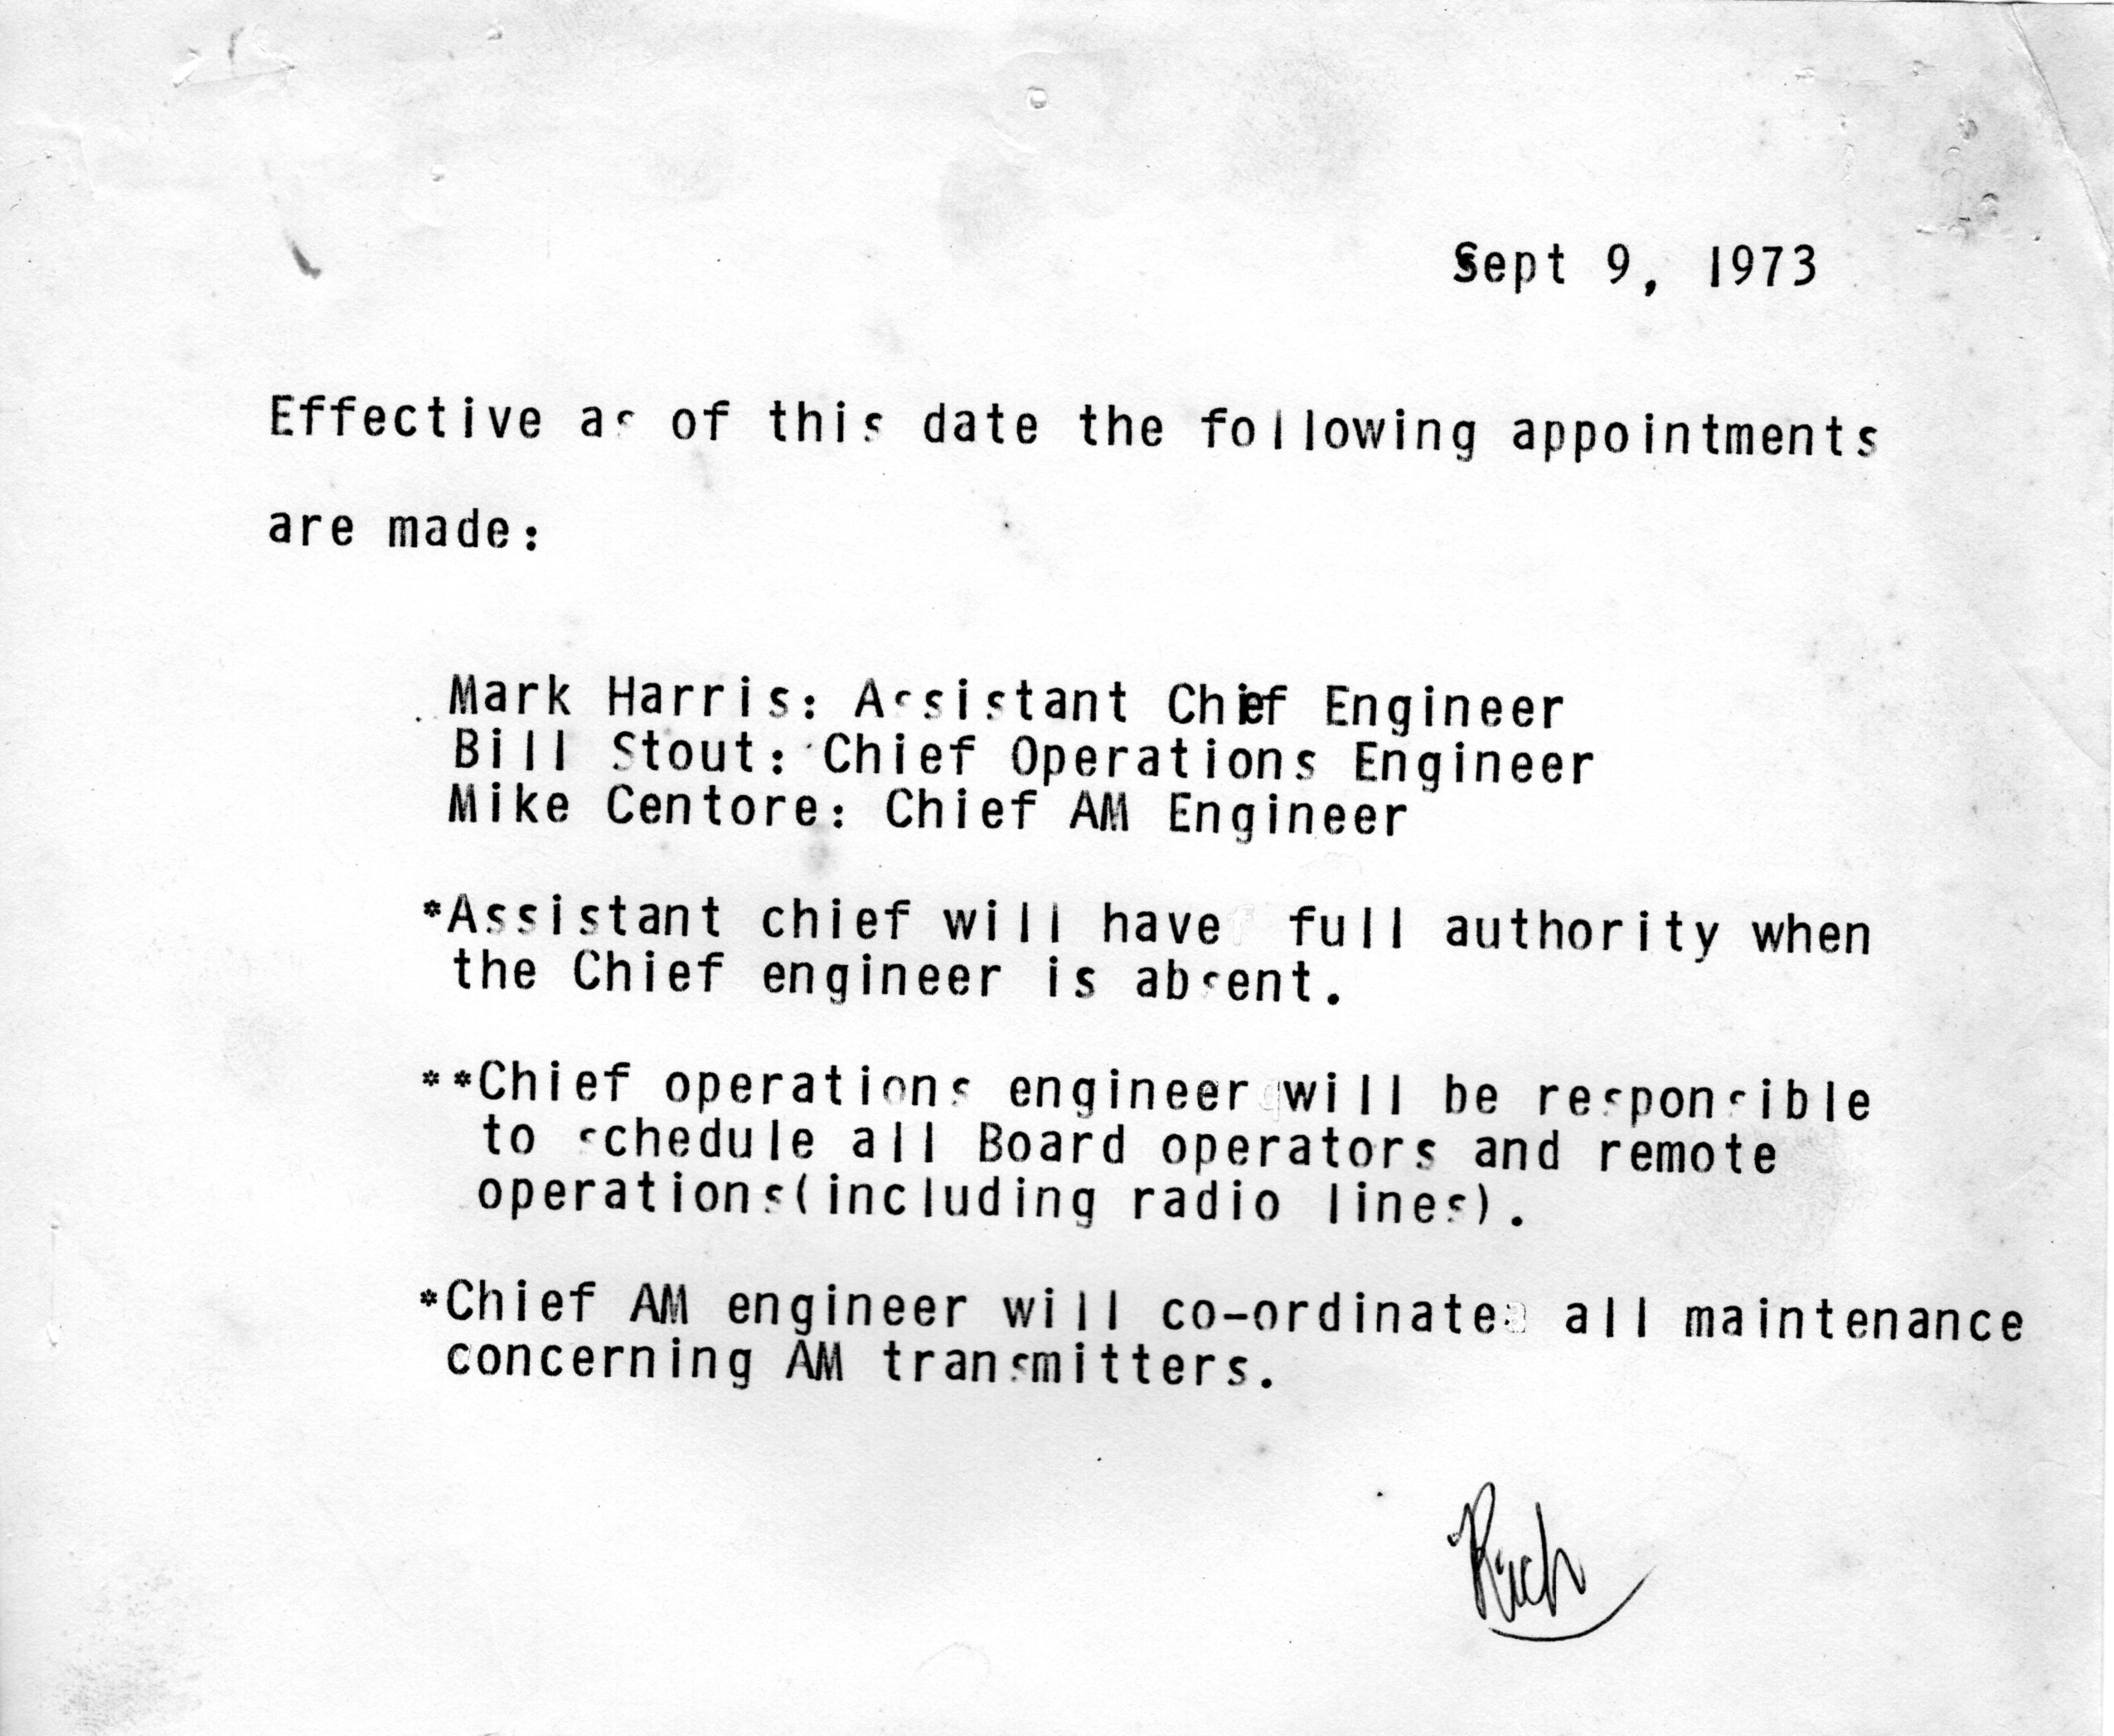 1973 - Official Announcements for the Engineering Department